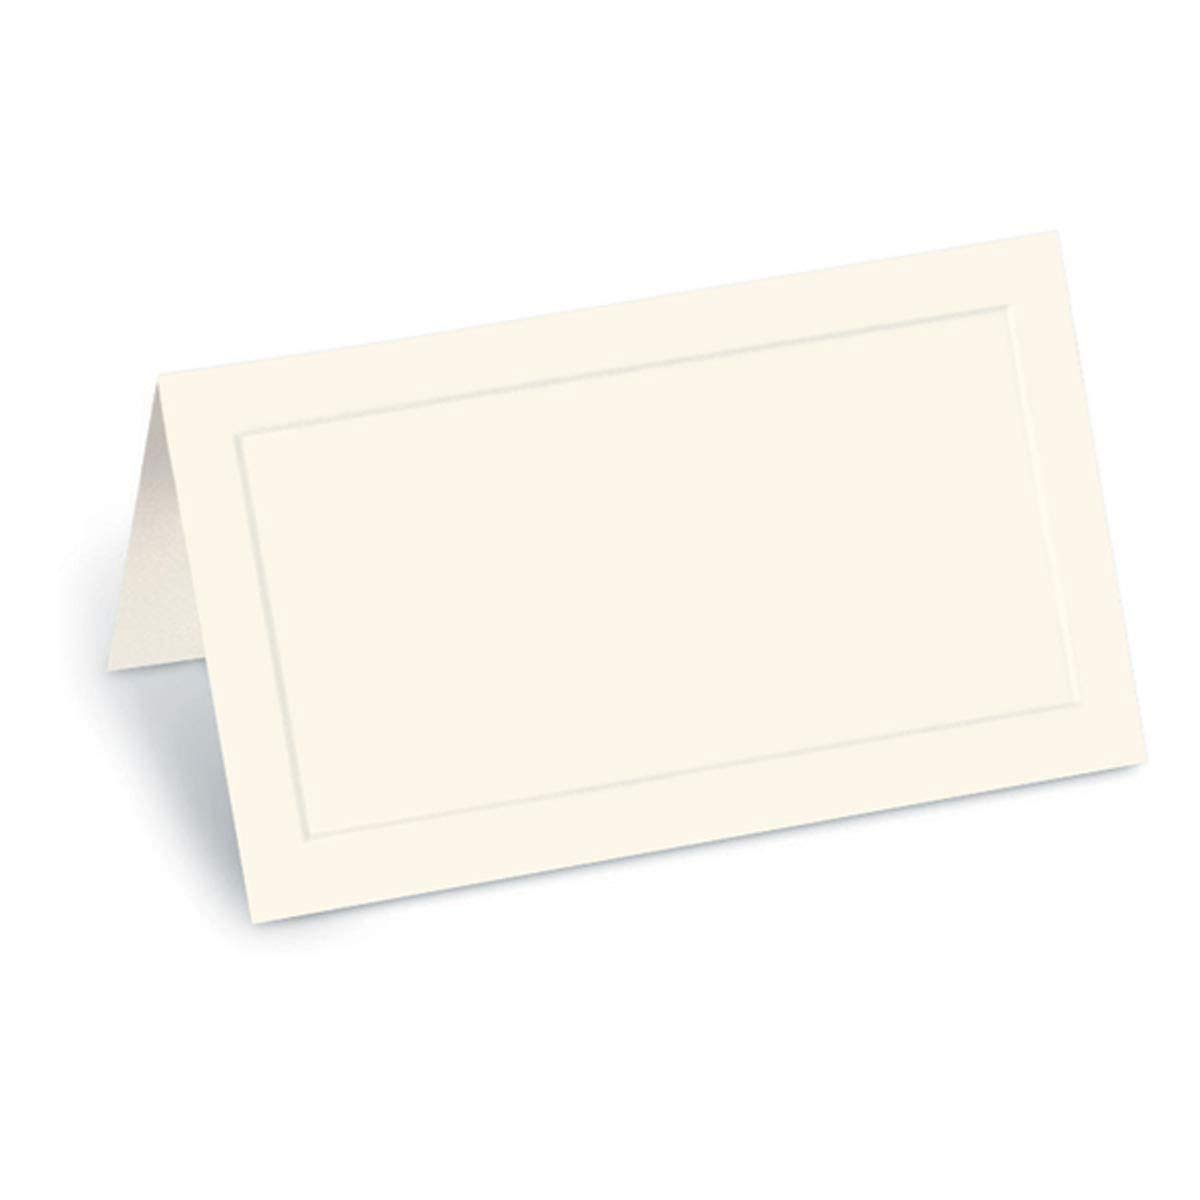 PaperDirect Cream Dignity Embossed 38lb Cover Stock Folded Place Cards, Micro-Perforated, 2'' x 3 1/2'', 400/pack, Laser and Inkjet Compatible by PaperDirect